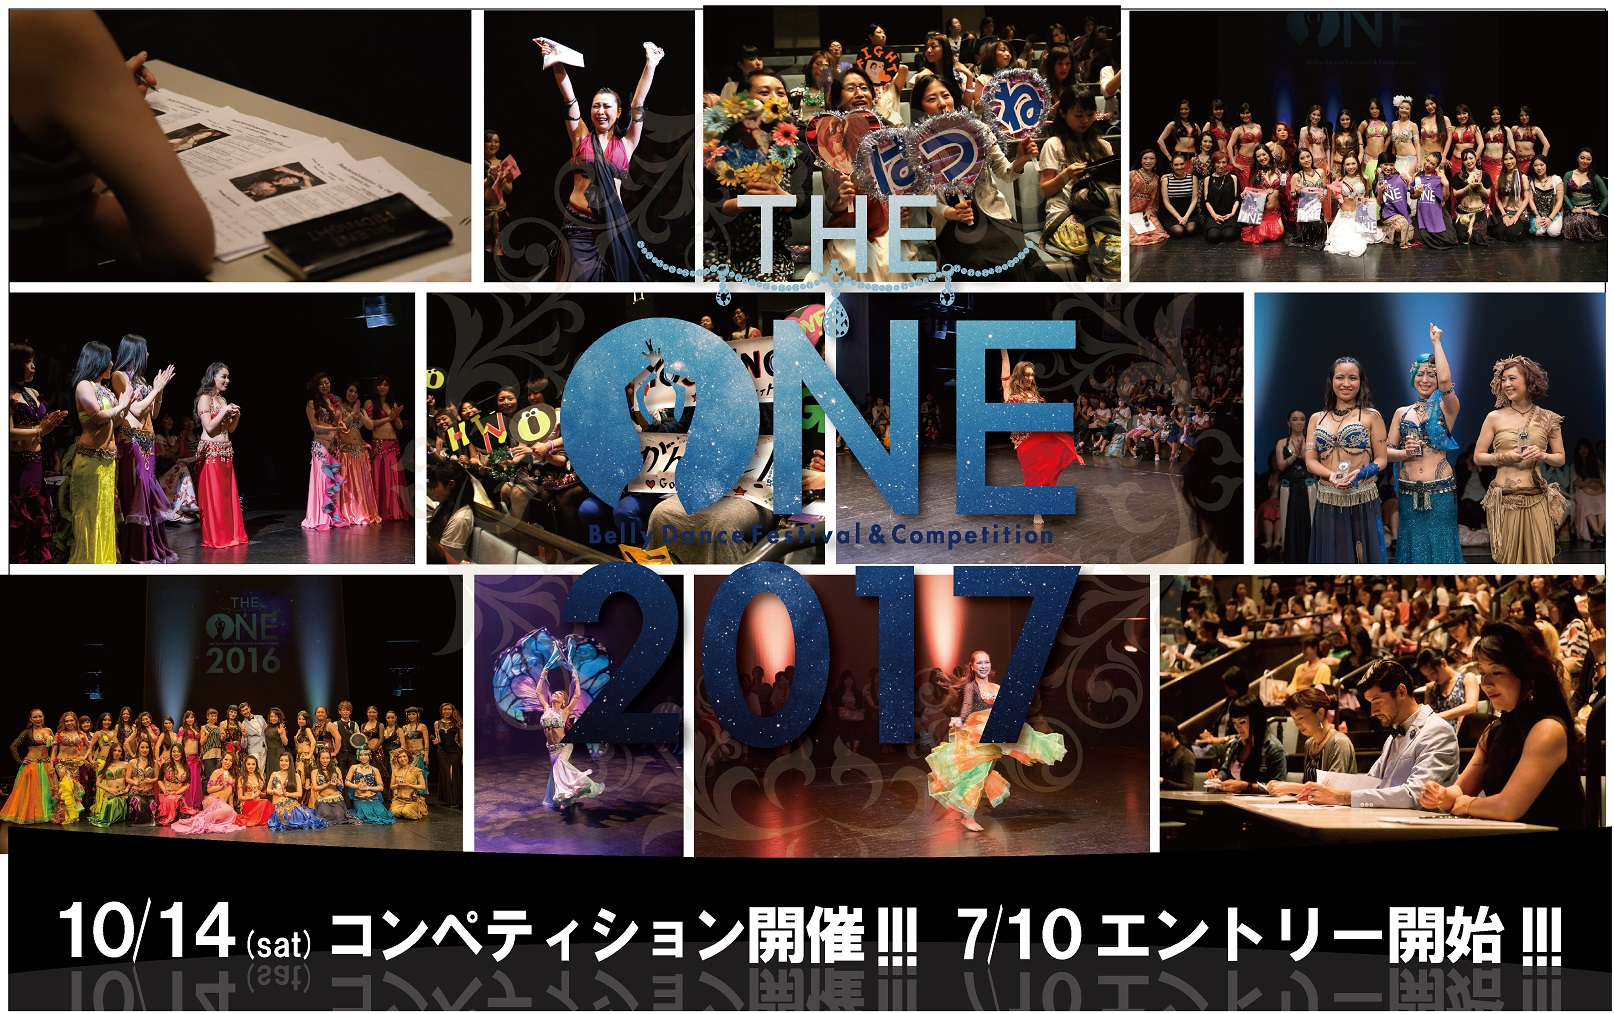 Competition 予選エントリー 審査料入金ページ 【BellyDance Competition -The ONE- 2017】